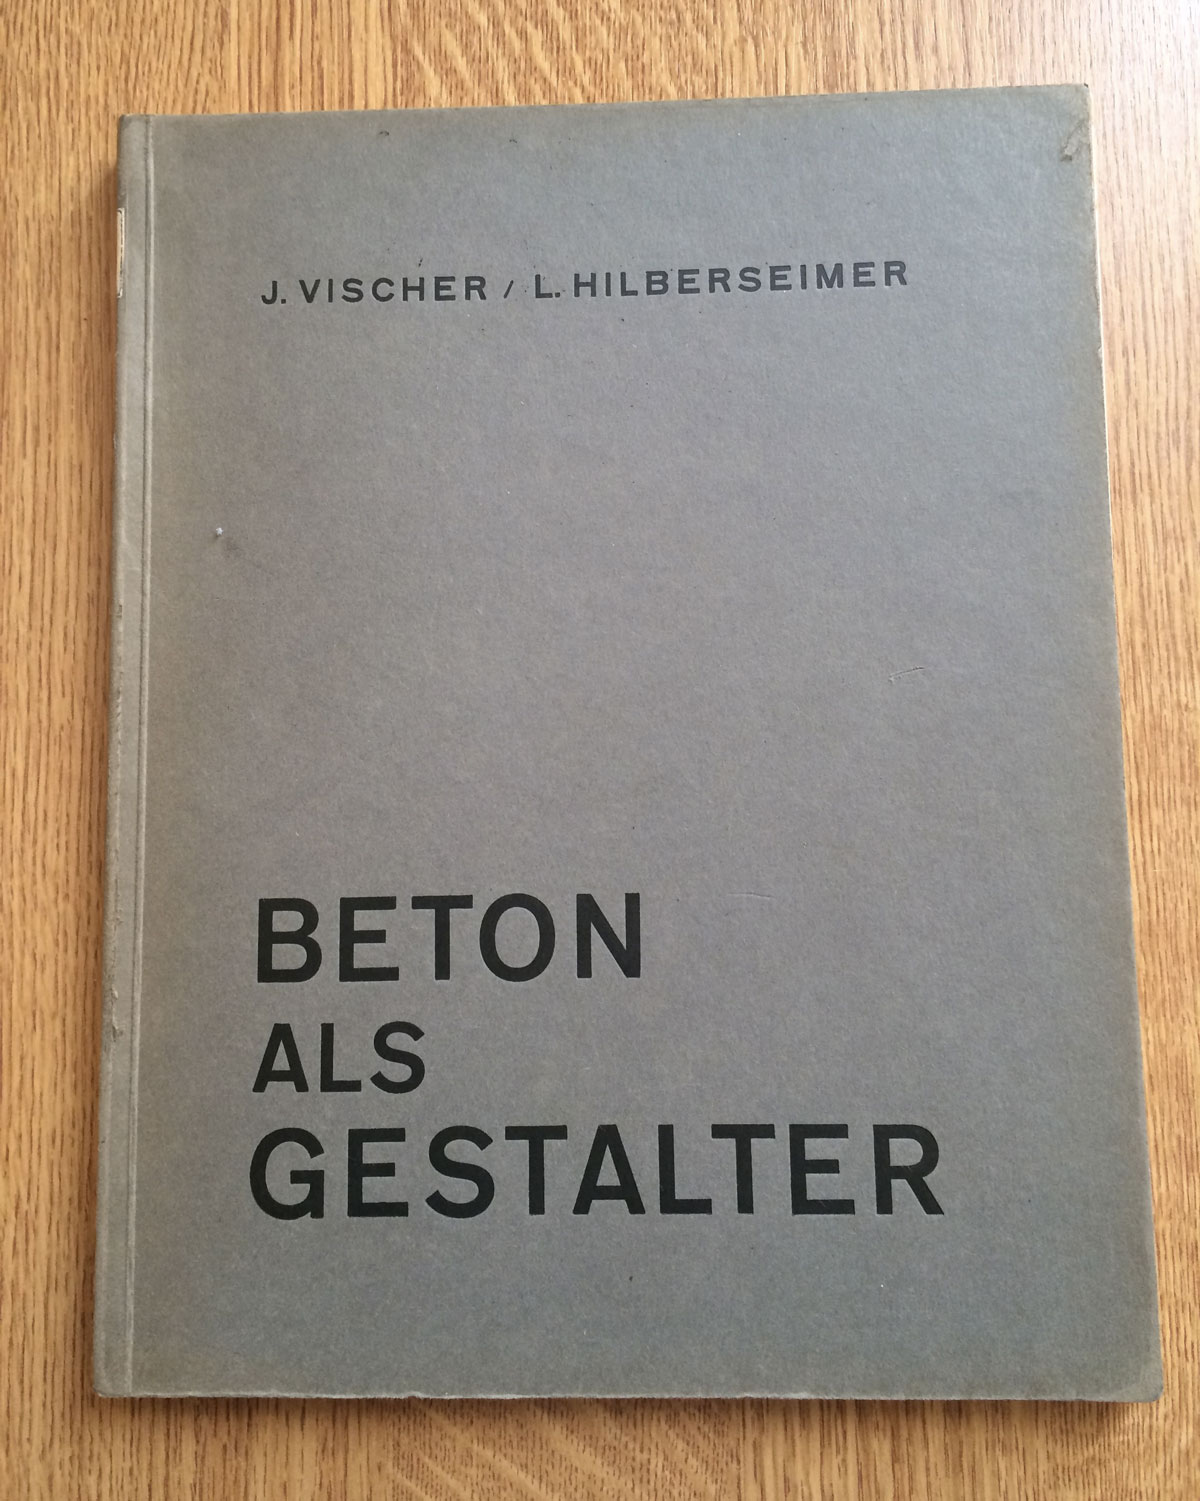 The Archivist, Beton als gestalter